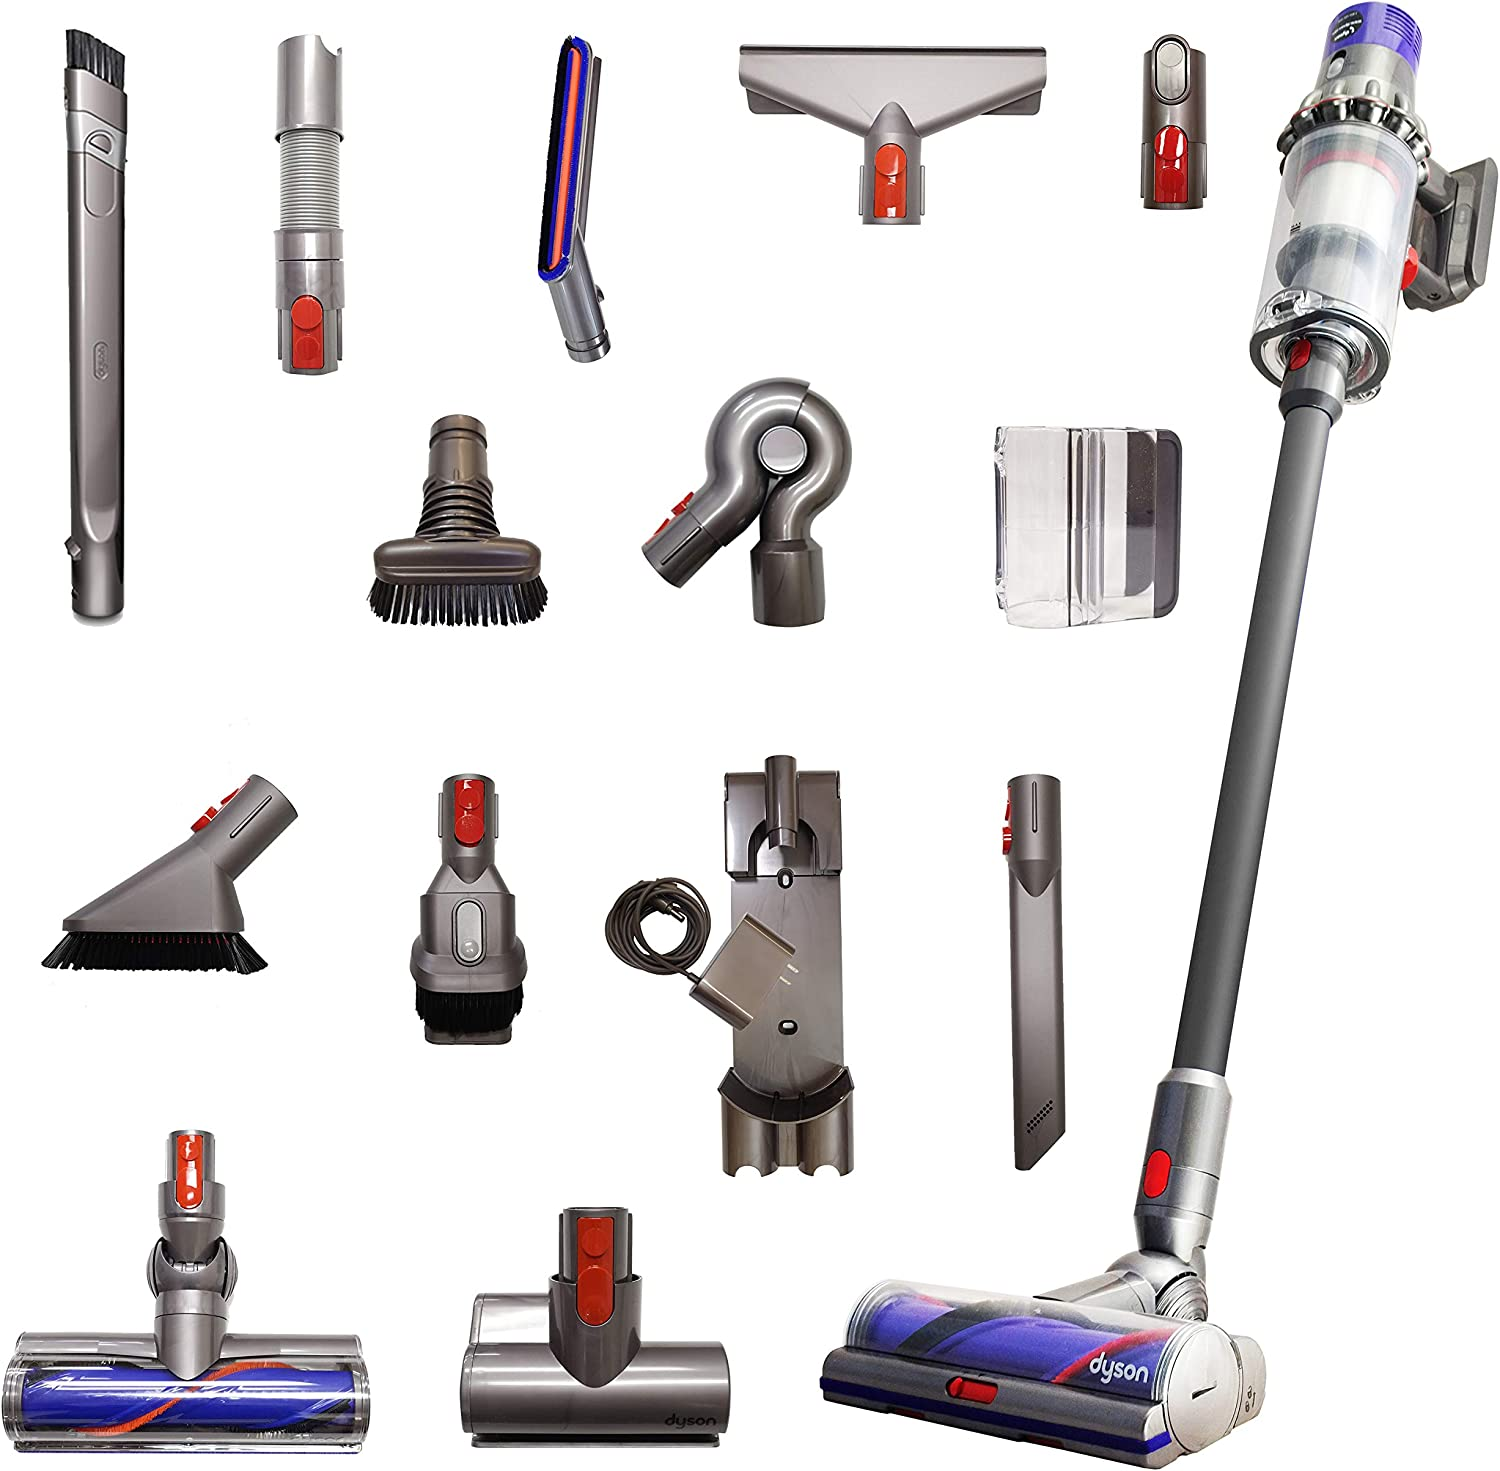 Dyson Cyclone V10 Animal Pro with 15 Tools Including Torque Drive Cleaner Head, Mini Motorized Tool and Clean Everywhere Kit, Lightweight Cordless Stick Vacuum Cleaner Cord-Free Powerful Suction, Iron